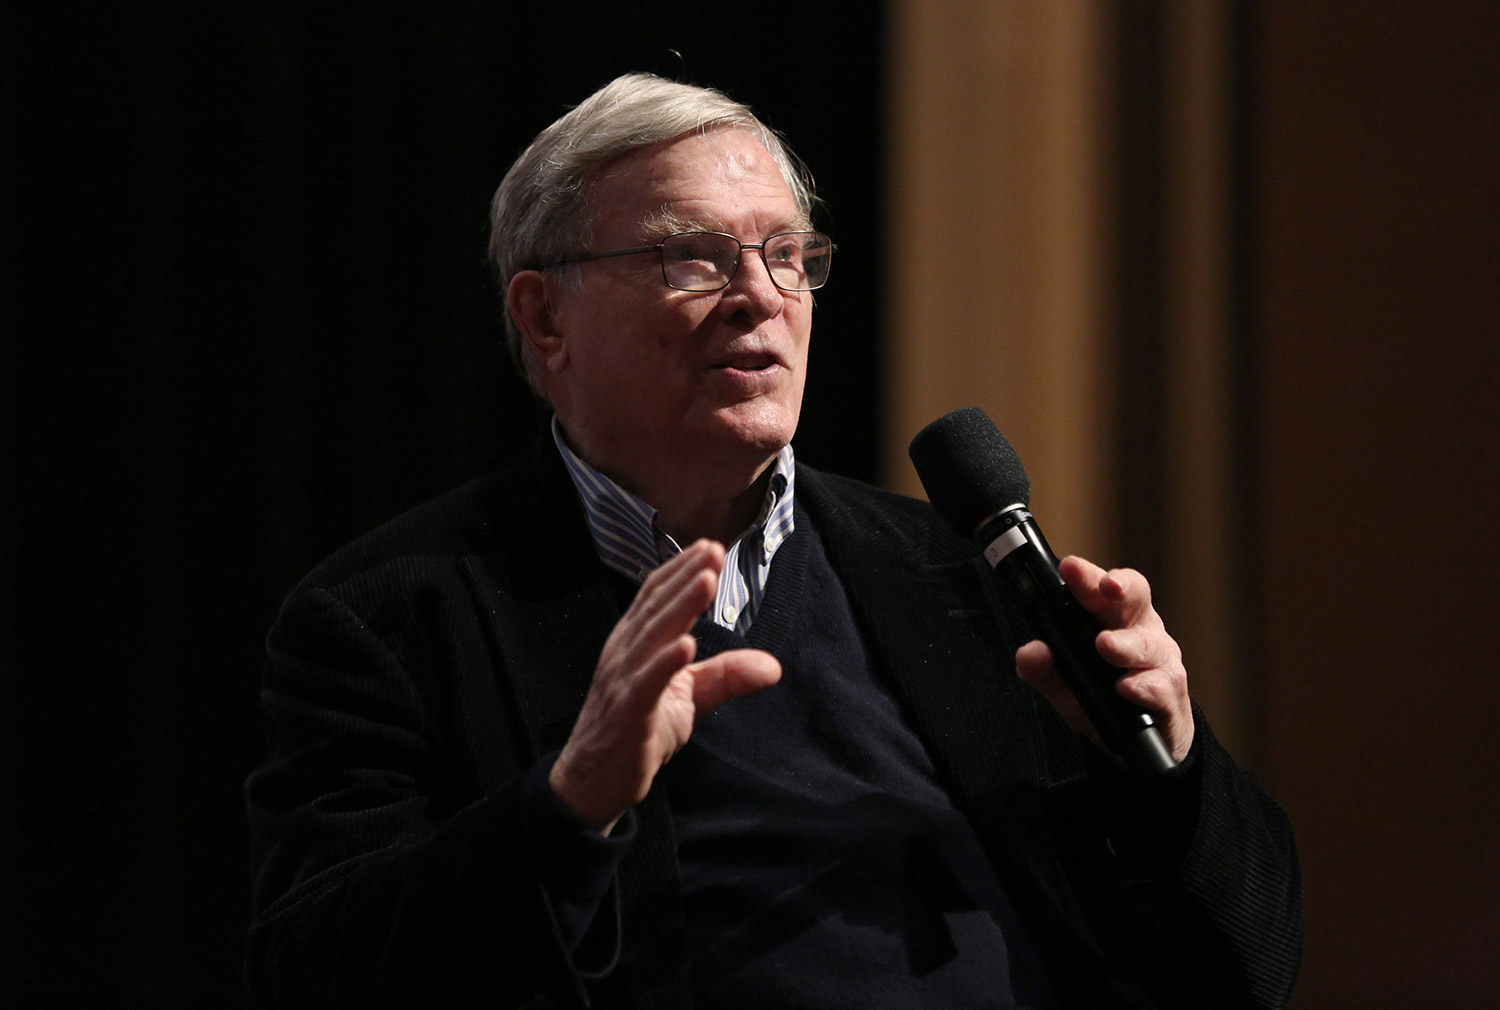 DA Pennebaker, speaking at an IDA Conversation series in November 2016. Photo: Laura Ahmed